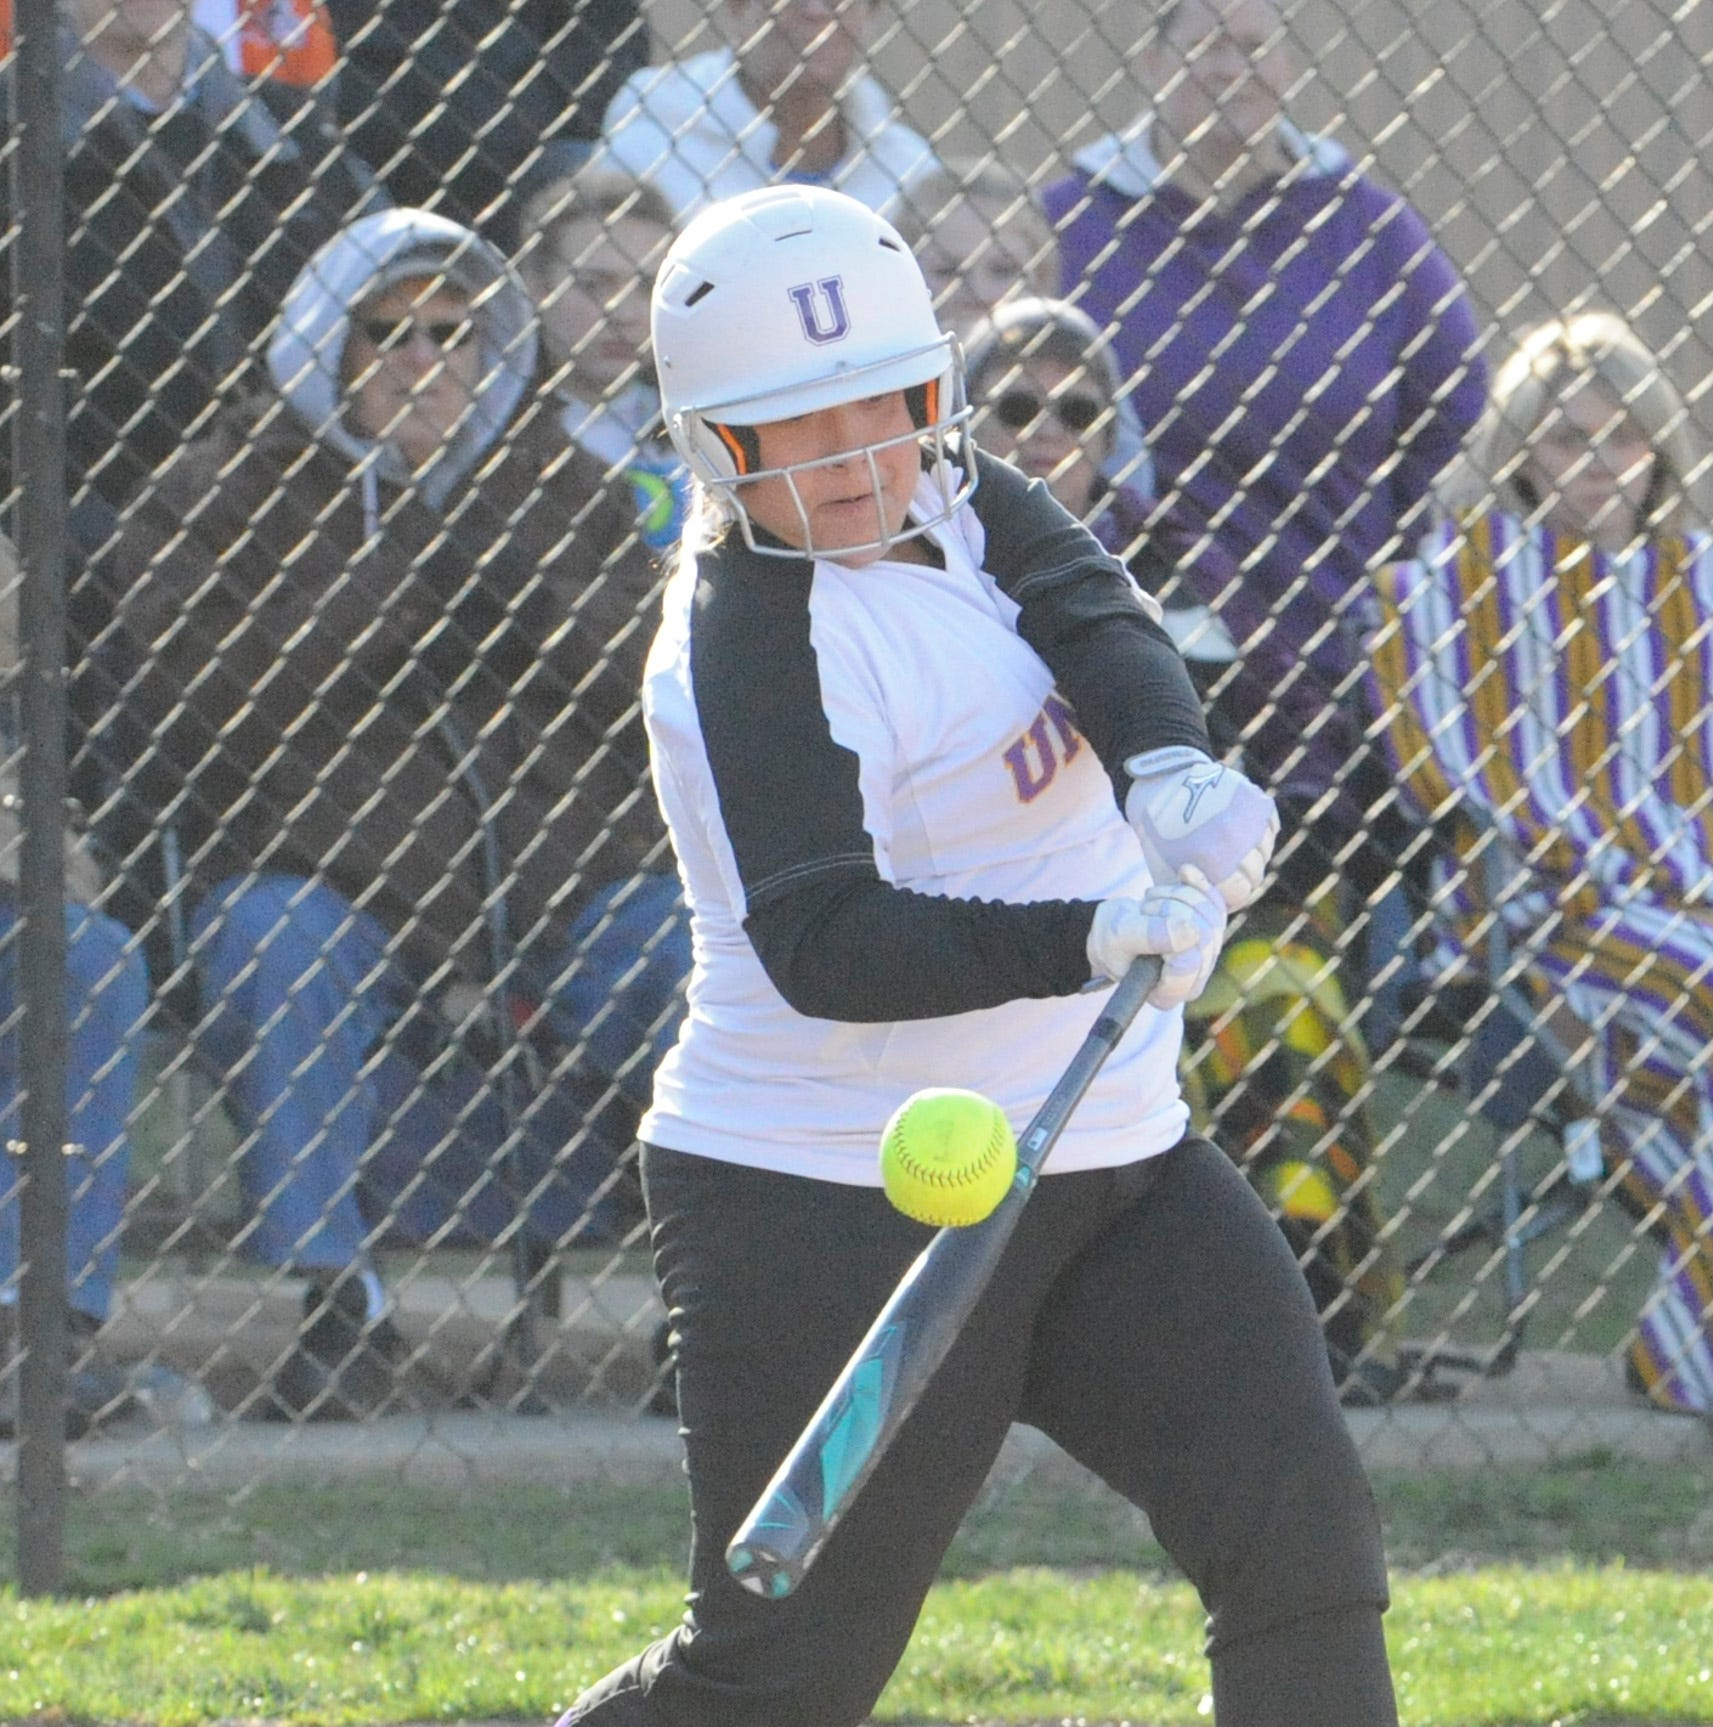 DAILY DIGEST: Unioto softball stays perfect; Paint Valley baseball beats Huntington